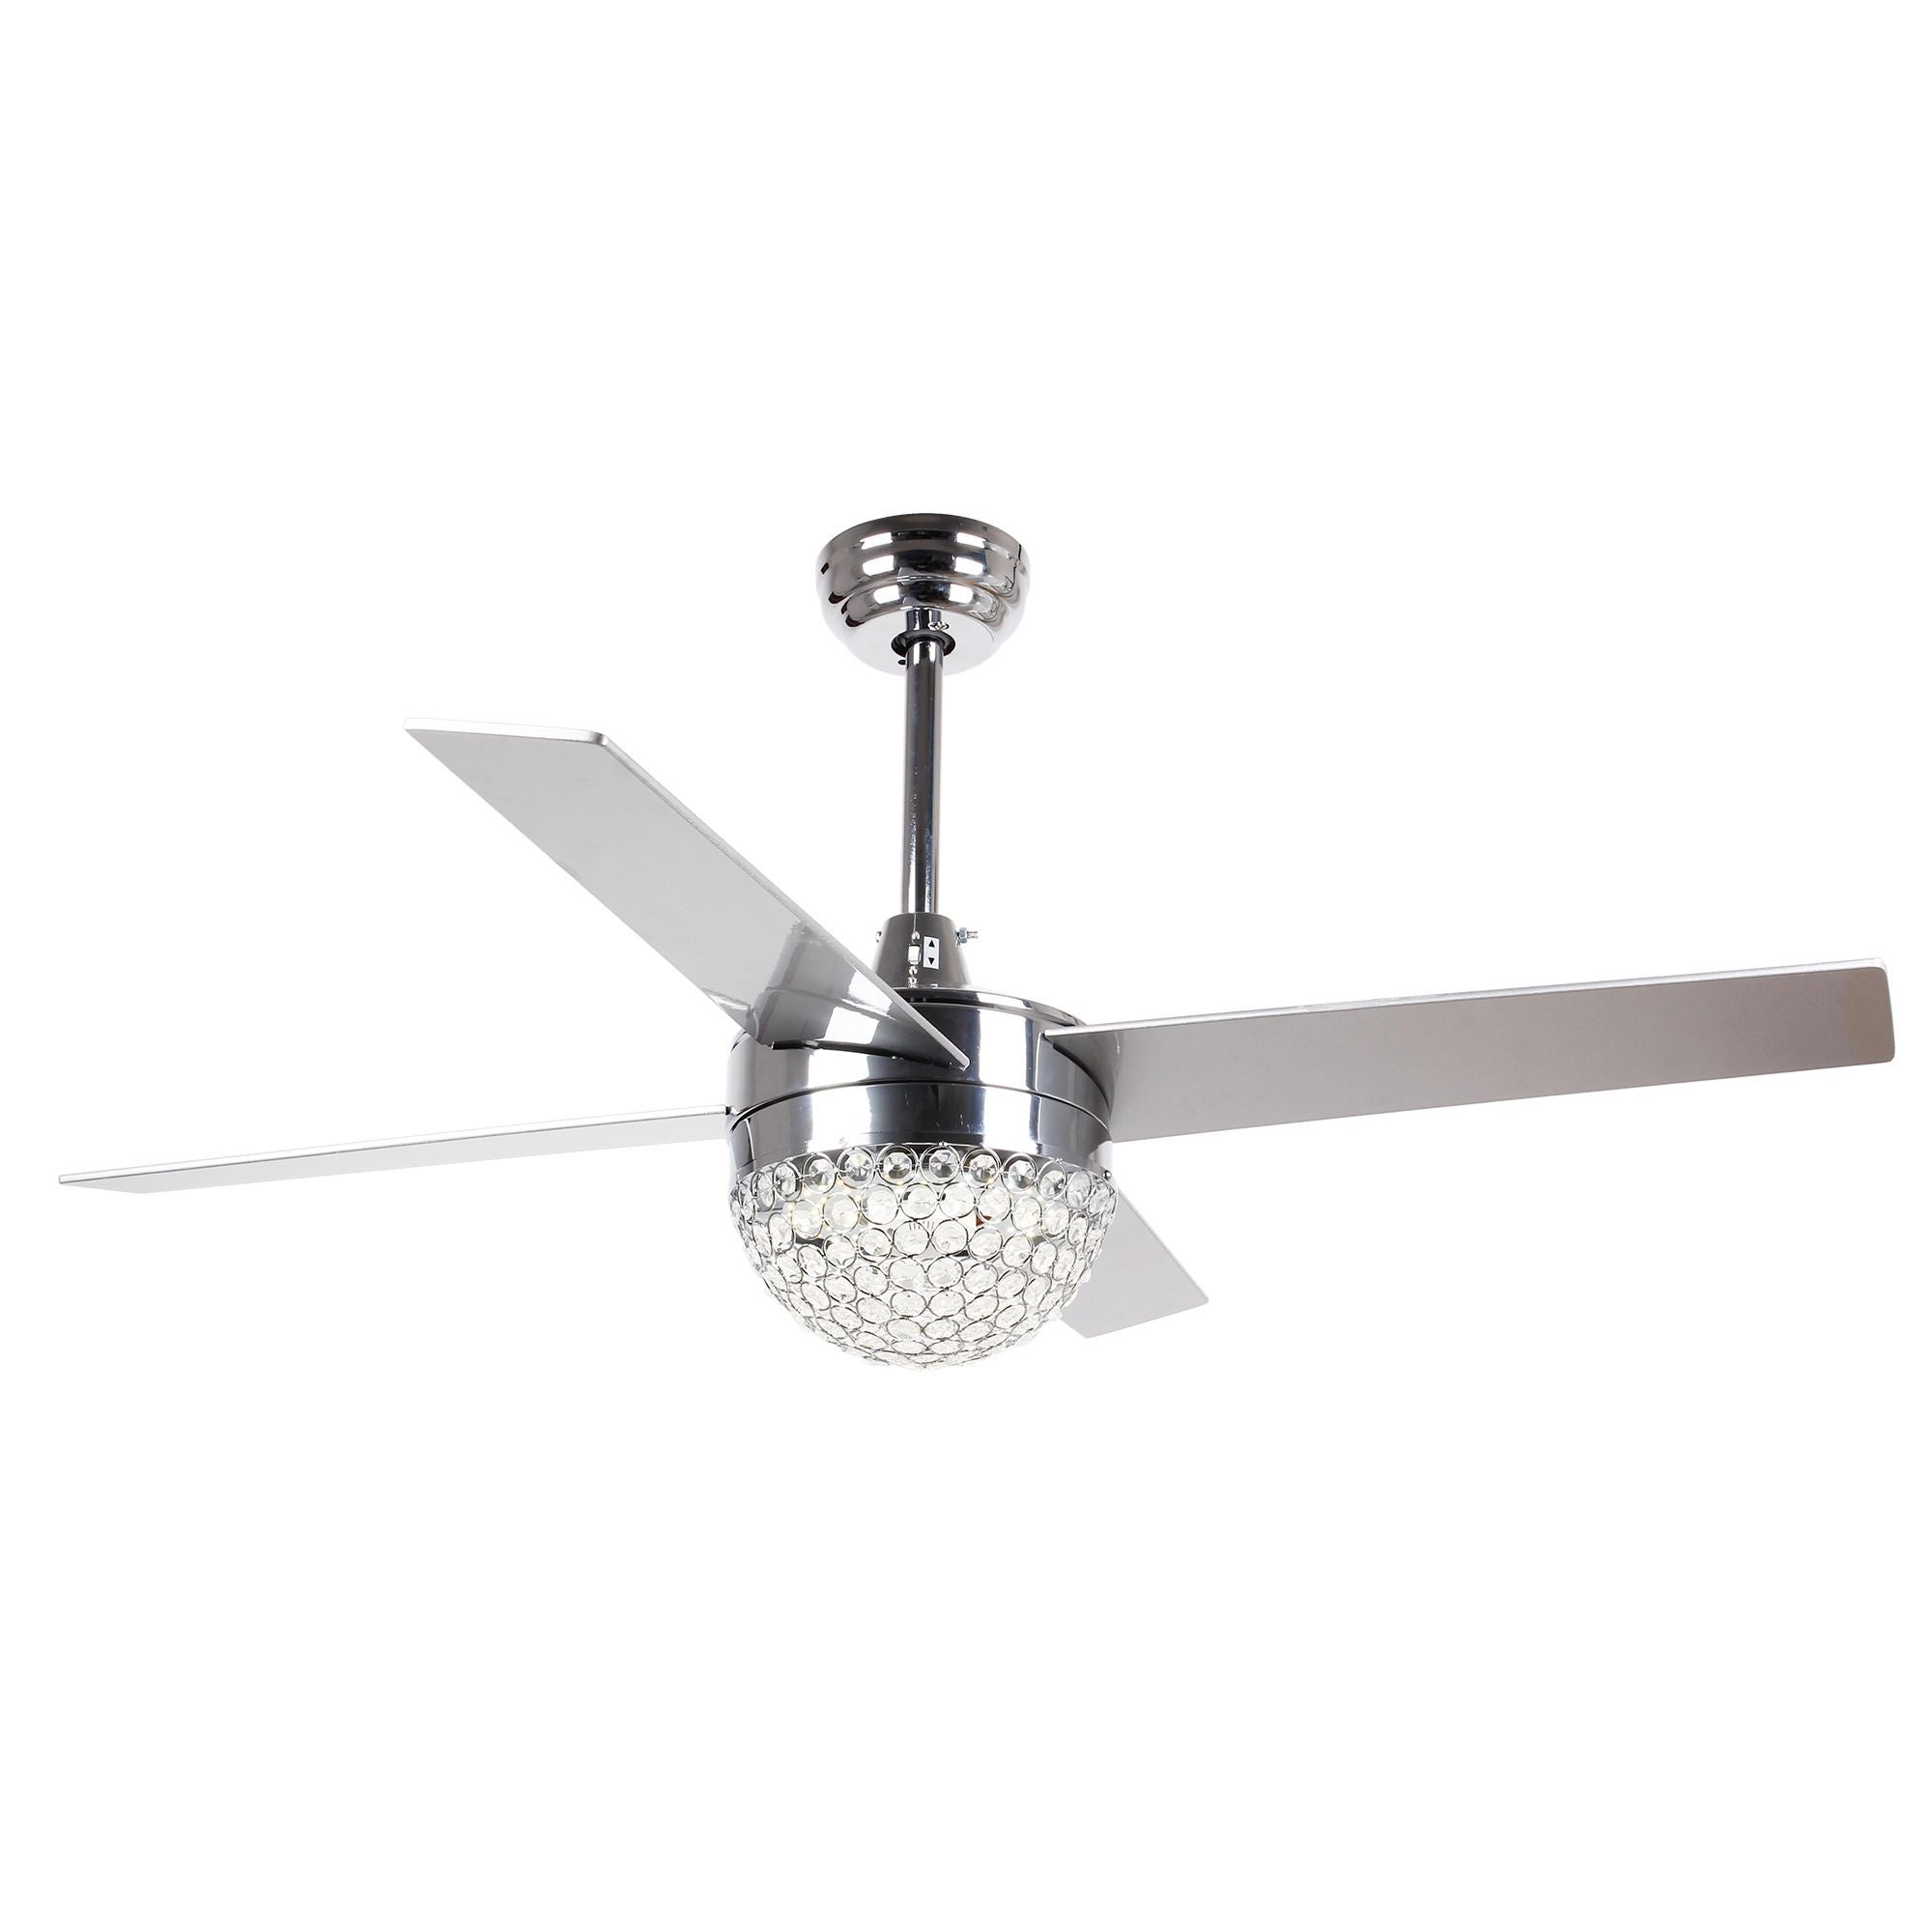 Buy modern contemporary ceiling fans online at overstock our buy modern contemporary ceiling fans online at overstock our best lighting deals aloadofball Gallery